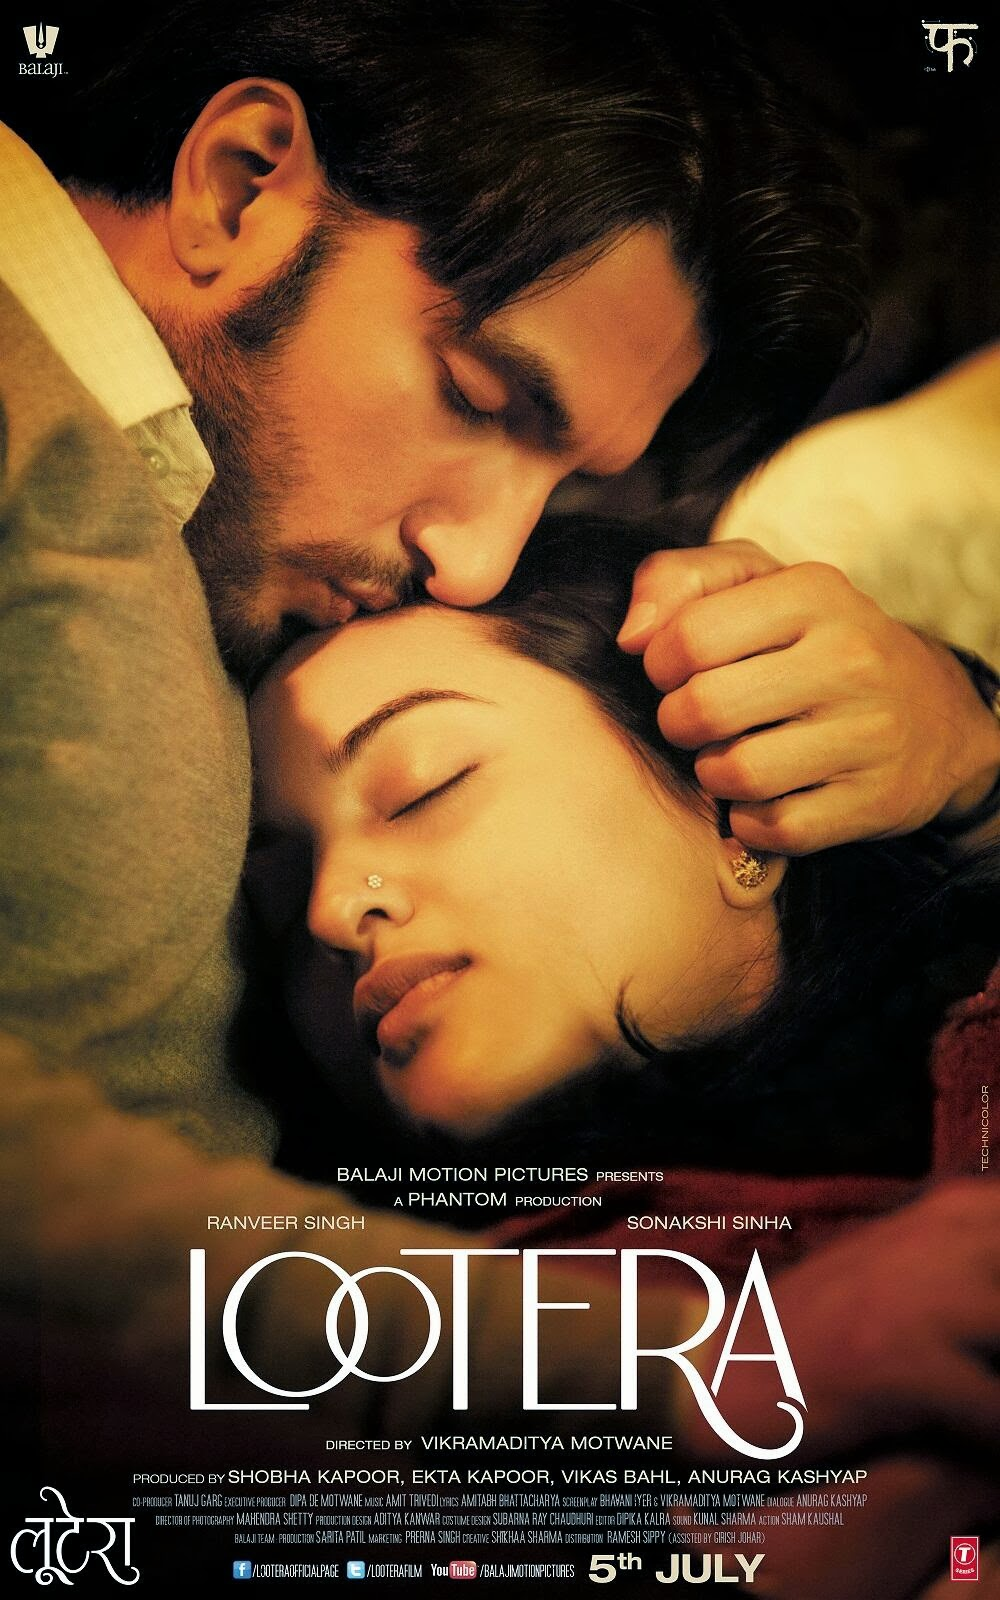 Watch Lootera (2013) Hindi Full Movie DVDRip Watch Online For Free Download